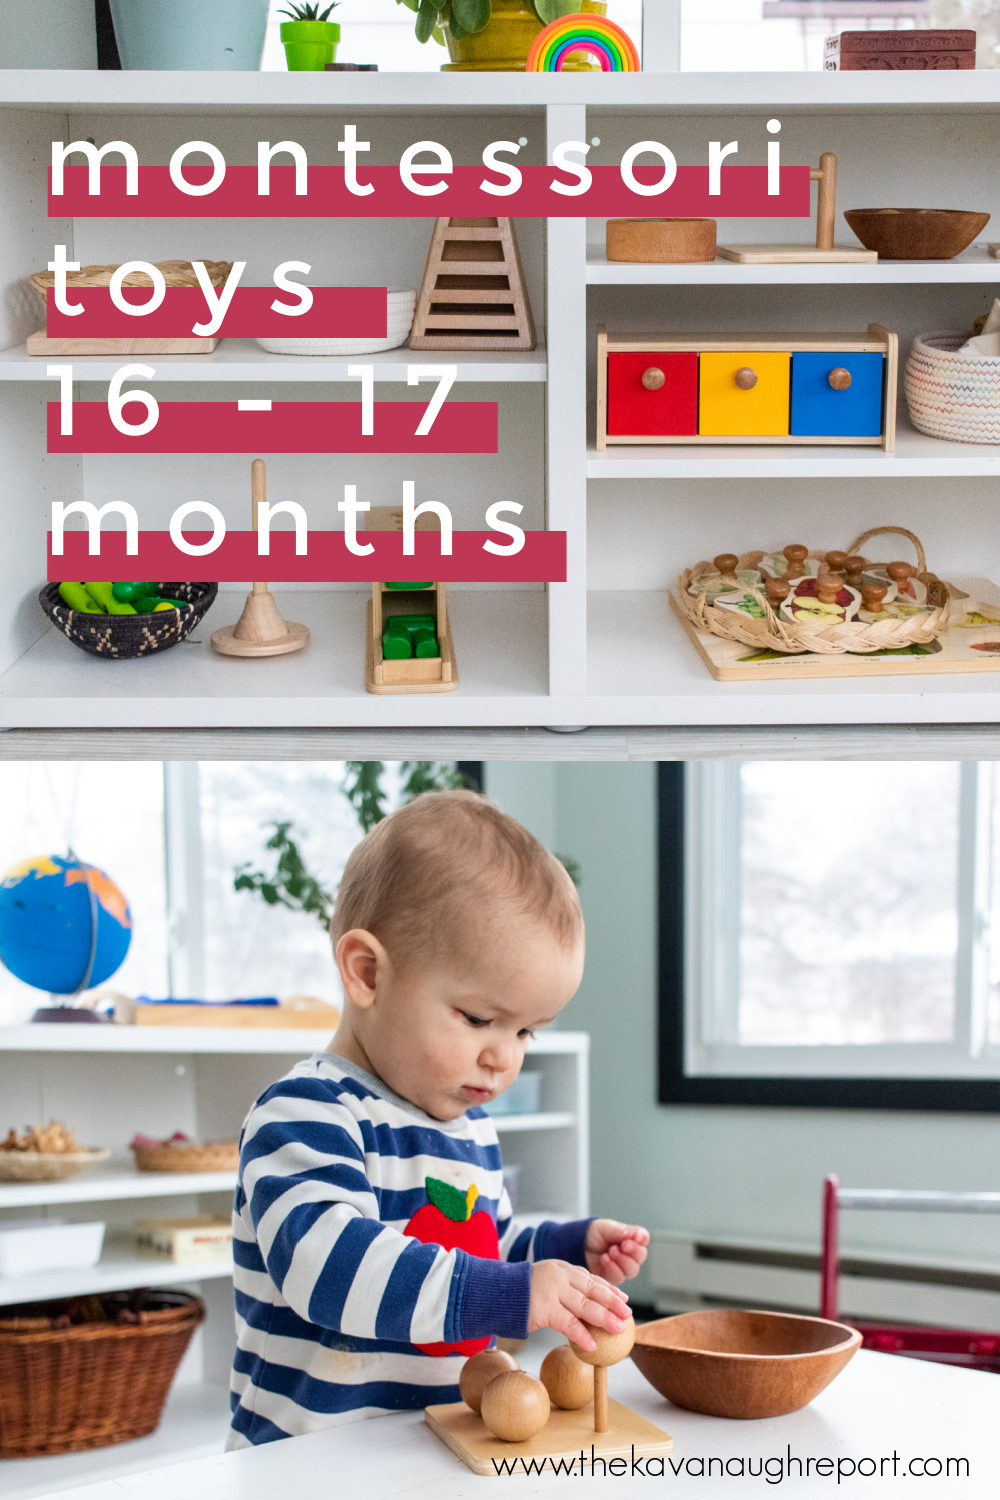 Montessori friendly toy ideas and a look at our play shelves for 16 to 17 months. These are perfect Montessori play ideas for 1-year-olds.